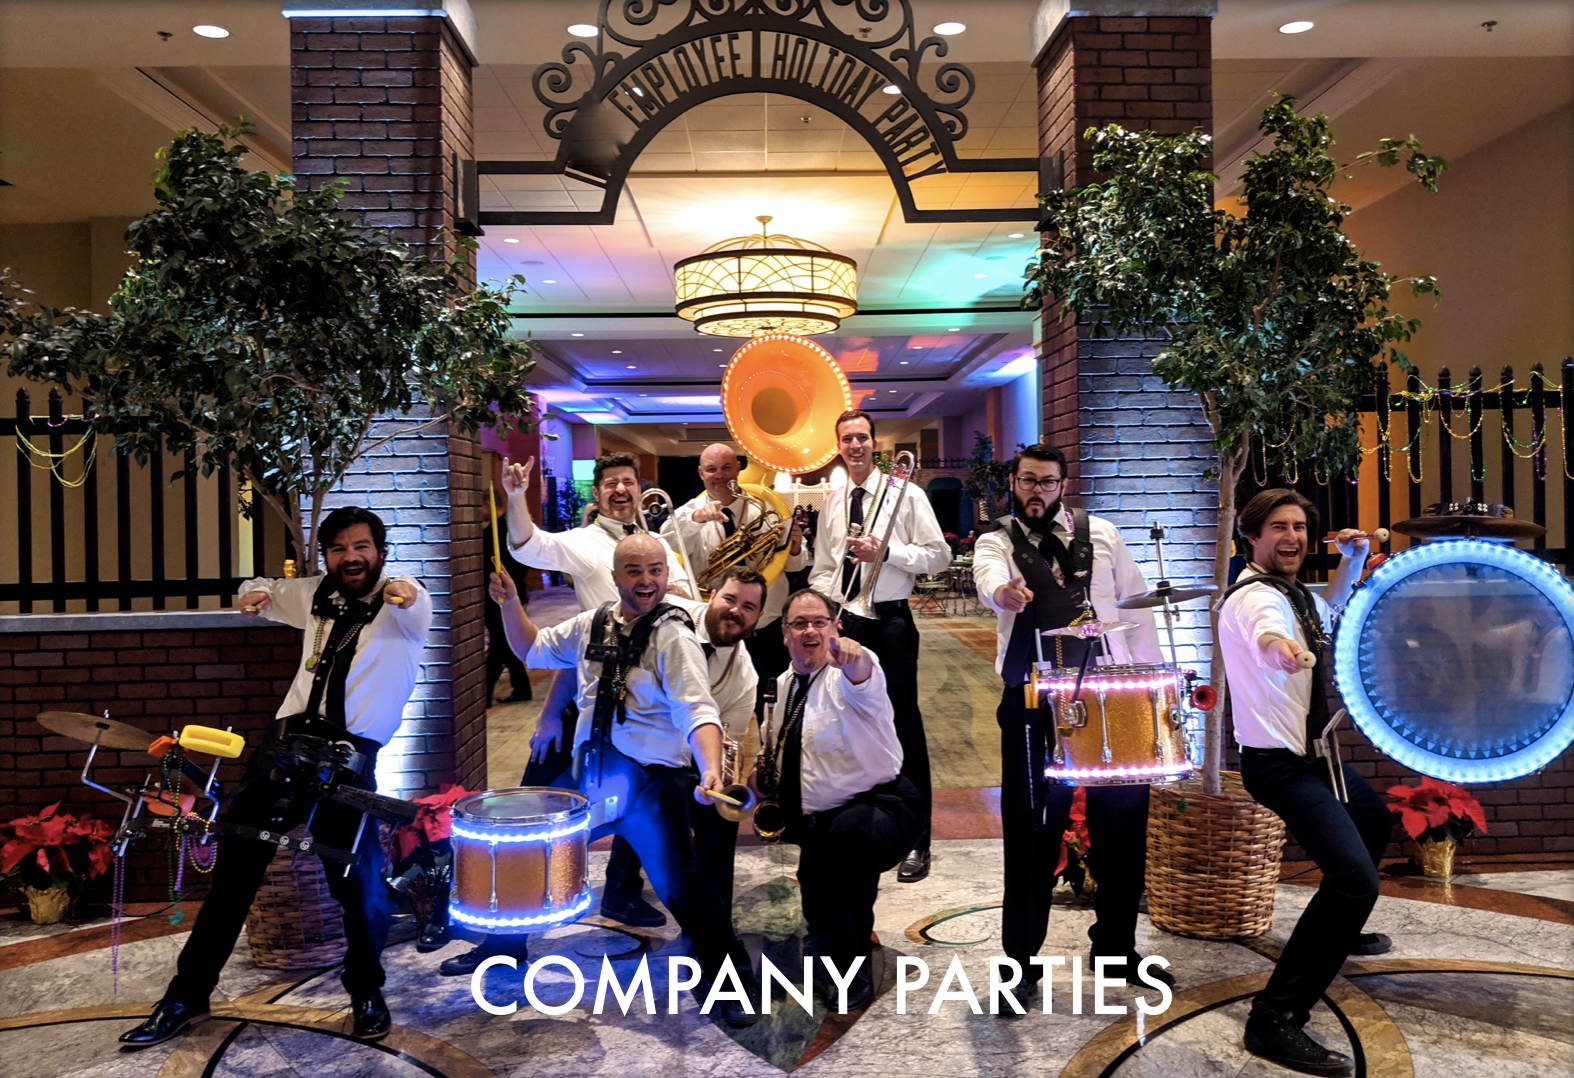 Brass Band Company Parties